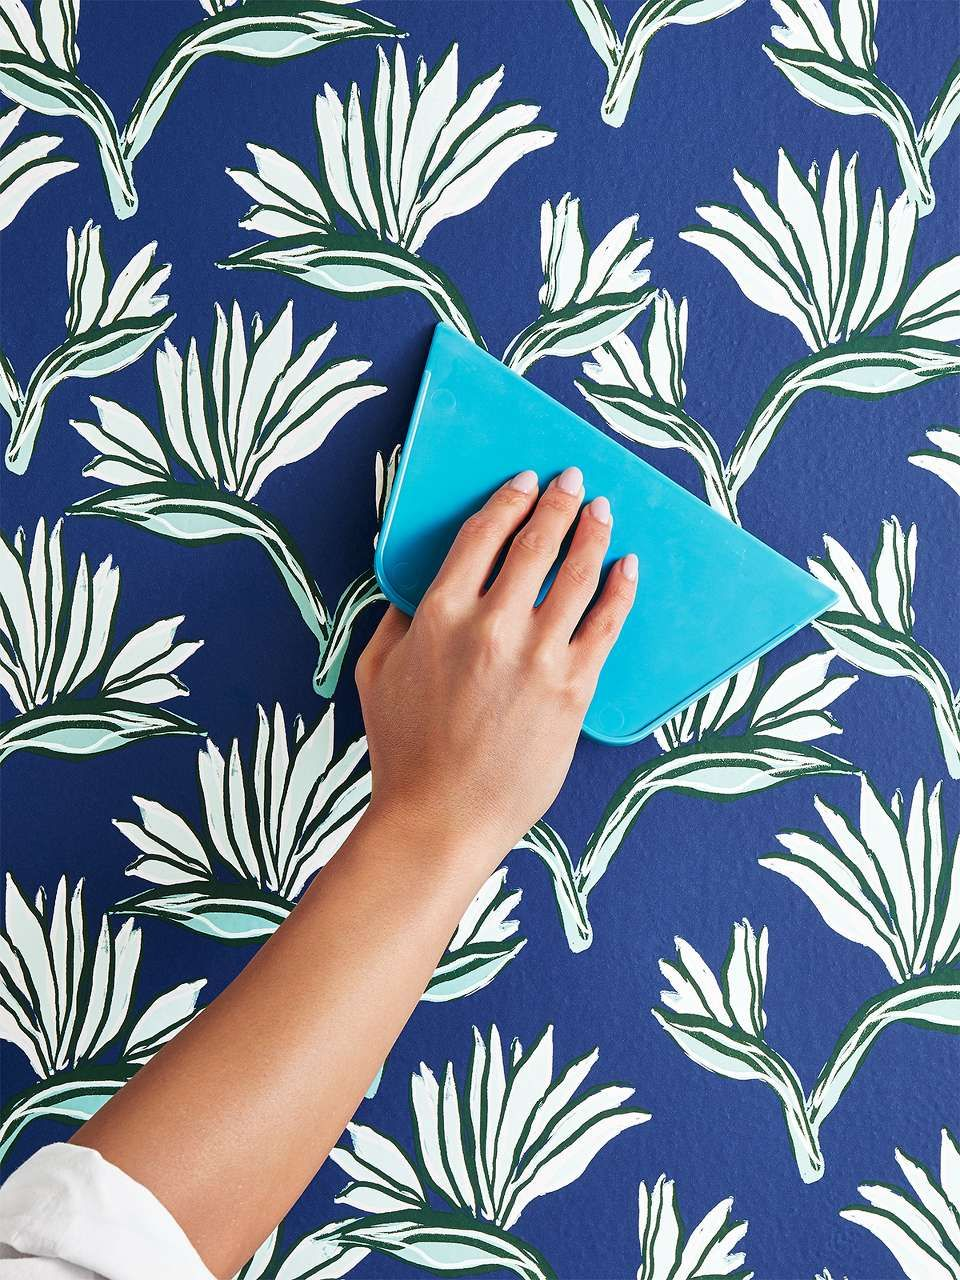 Shop For Wallpaper At Target Find Removable Peel Stick And Self Adhesive Wallpaper In A Variety In 2020 Peel And Stick Wallpaper Wallpaper Self Adhesive Wallpaper